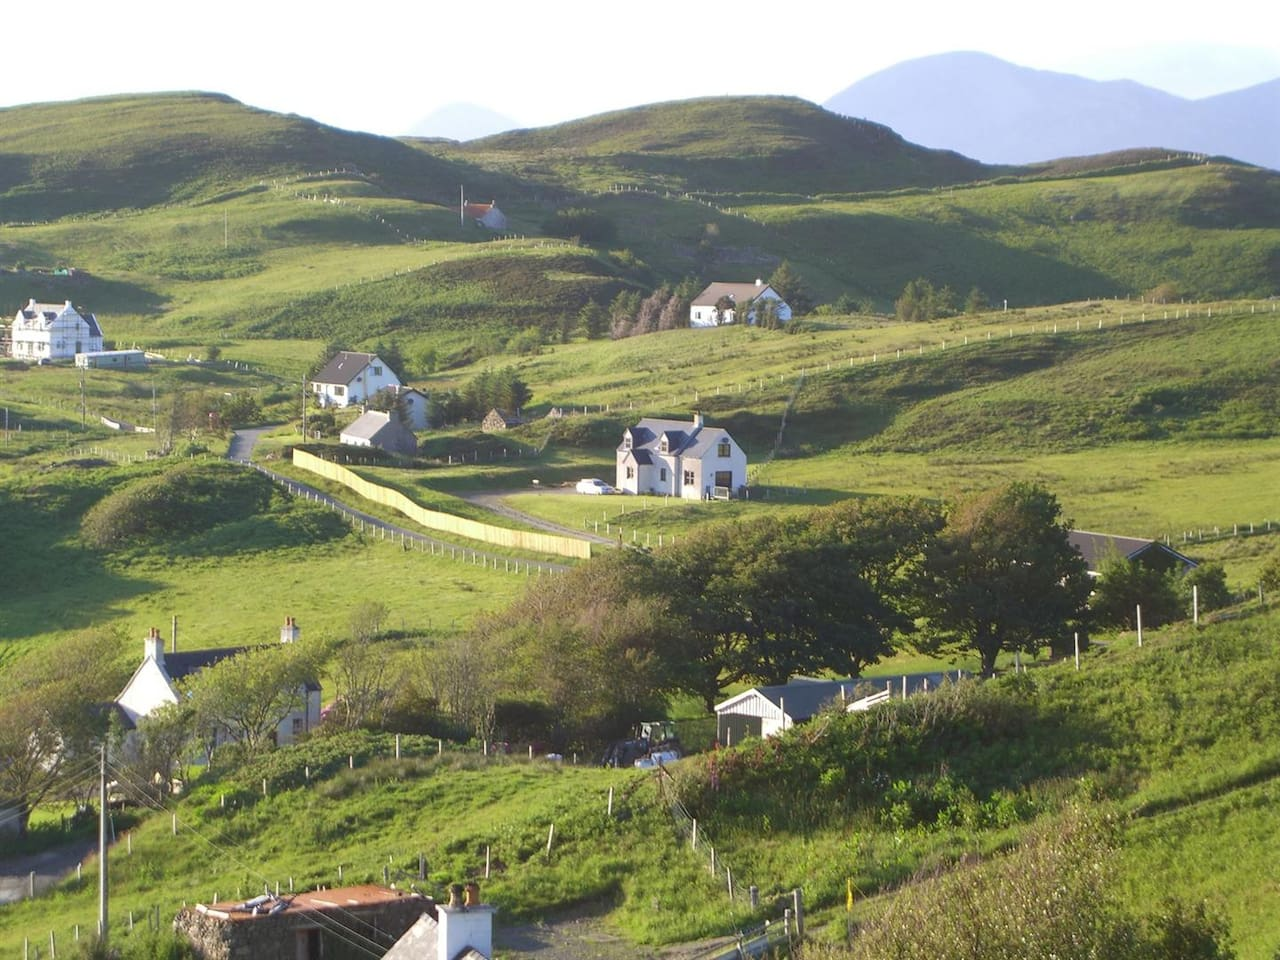 'The Willows' as pictured from the road above Tarskavaig village in early summer.